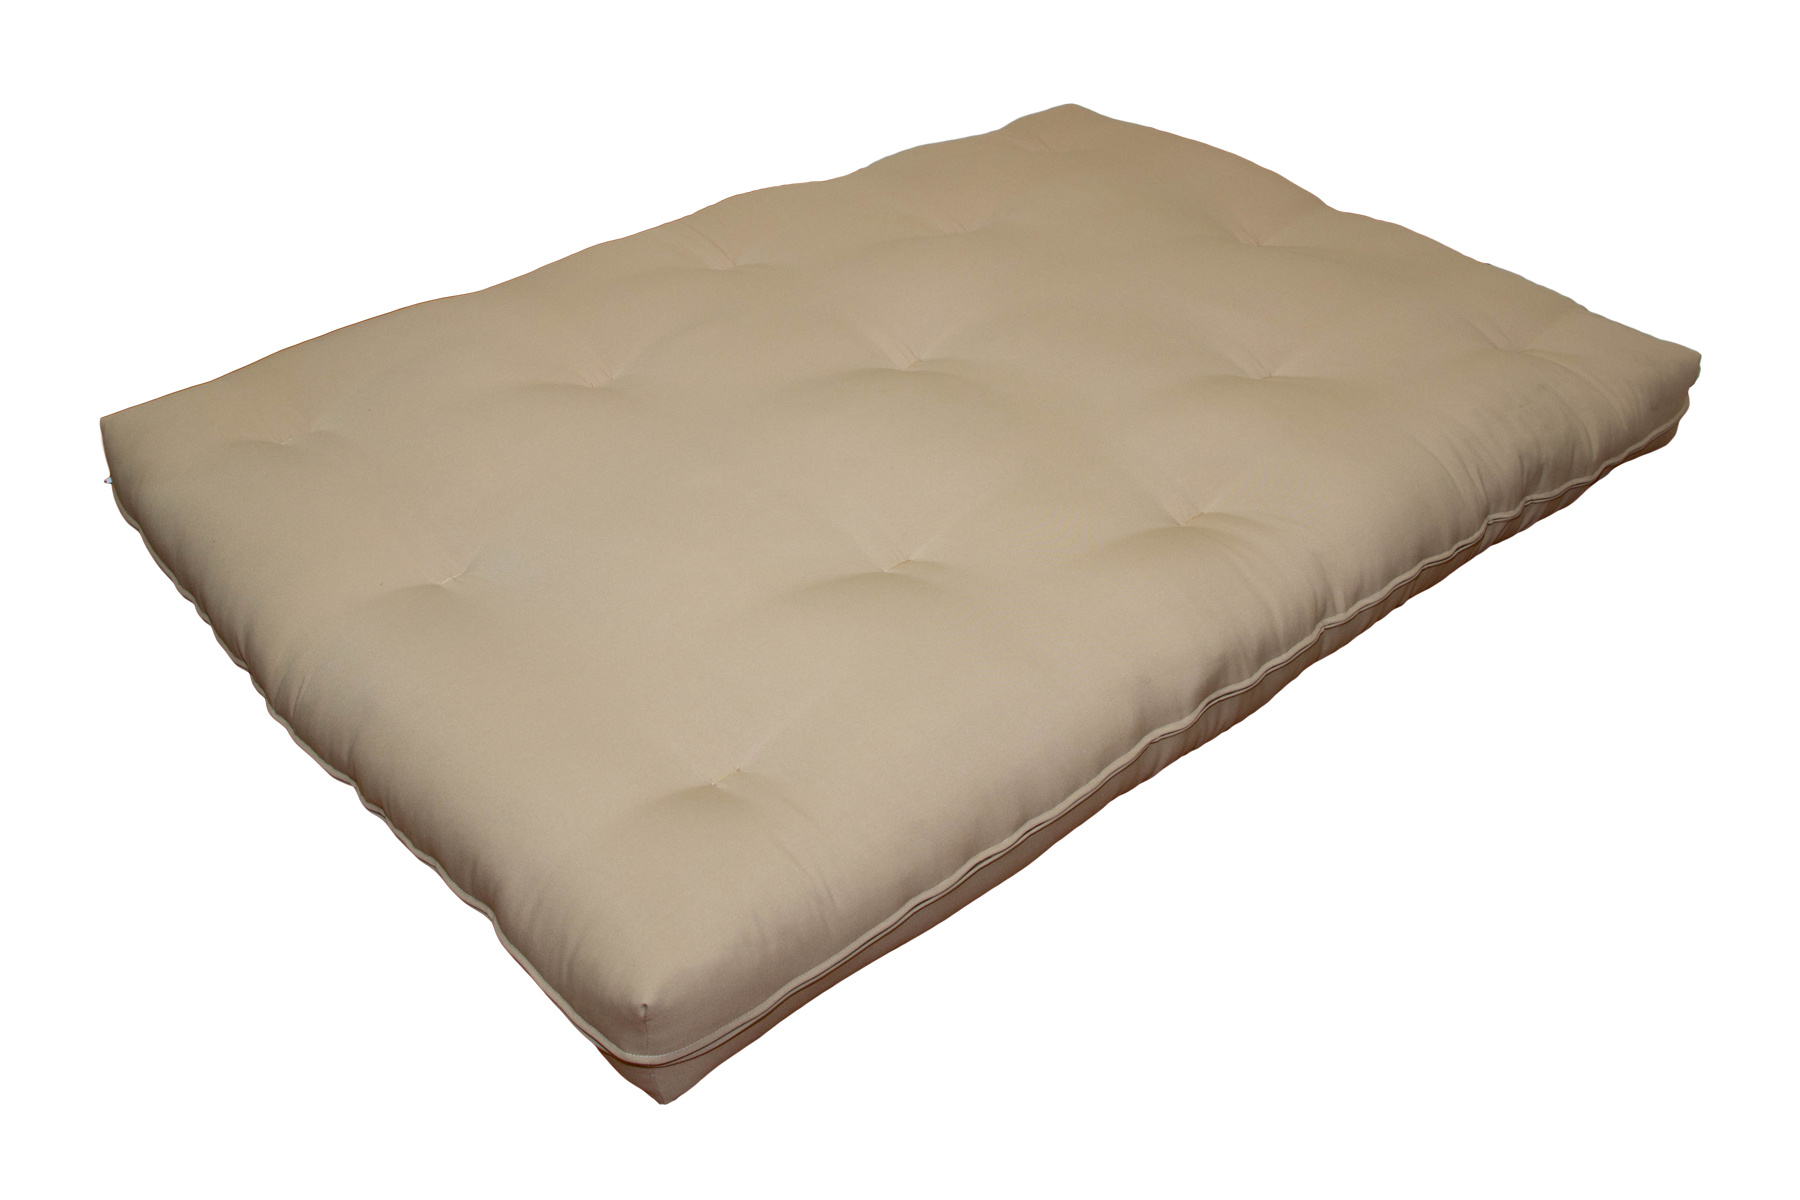 10 Innerspring Khaki Futon Mattress